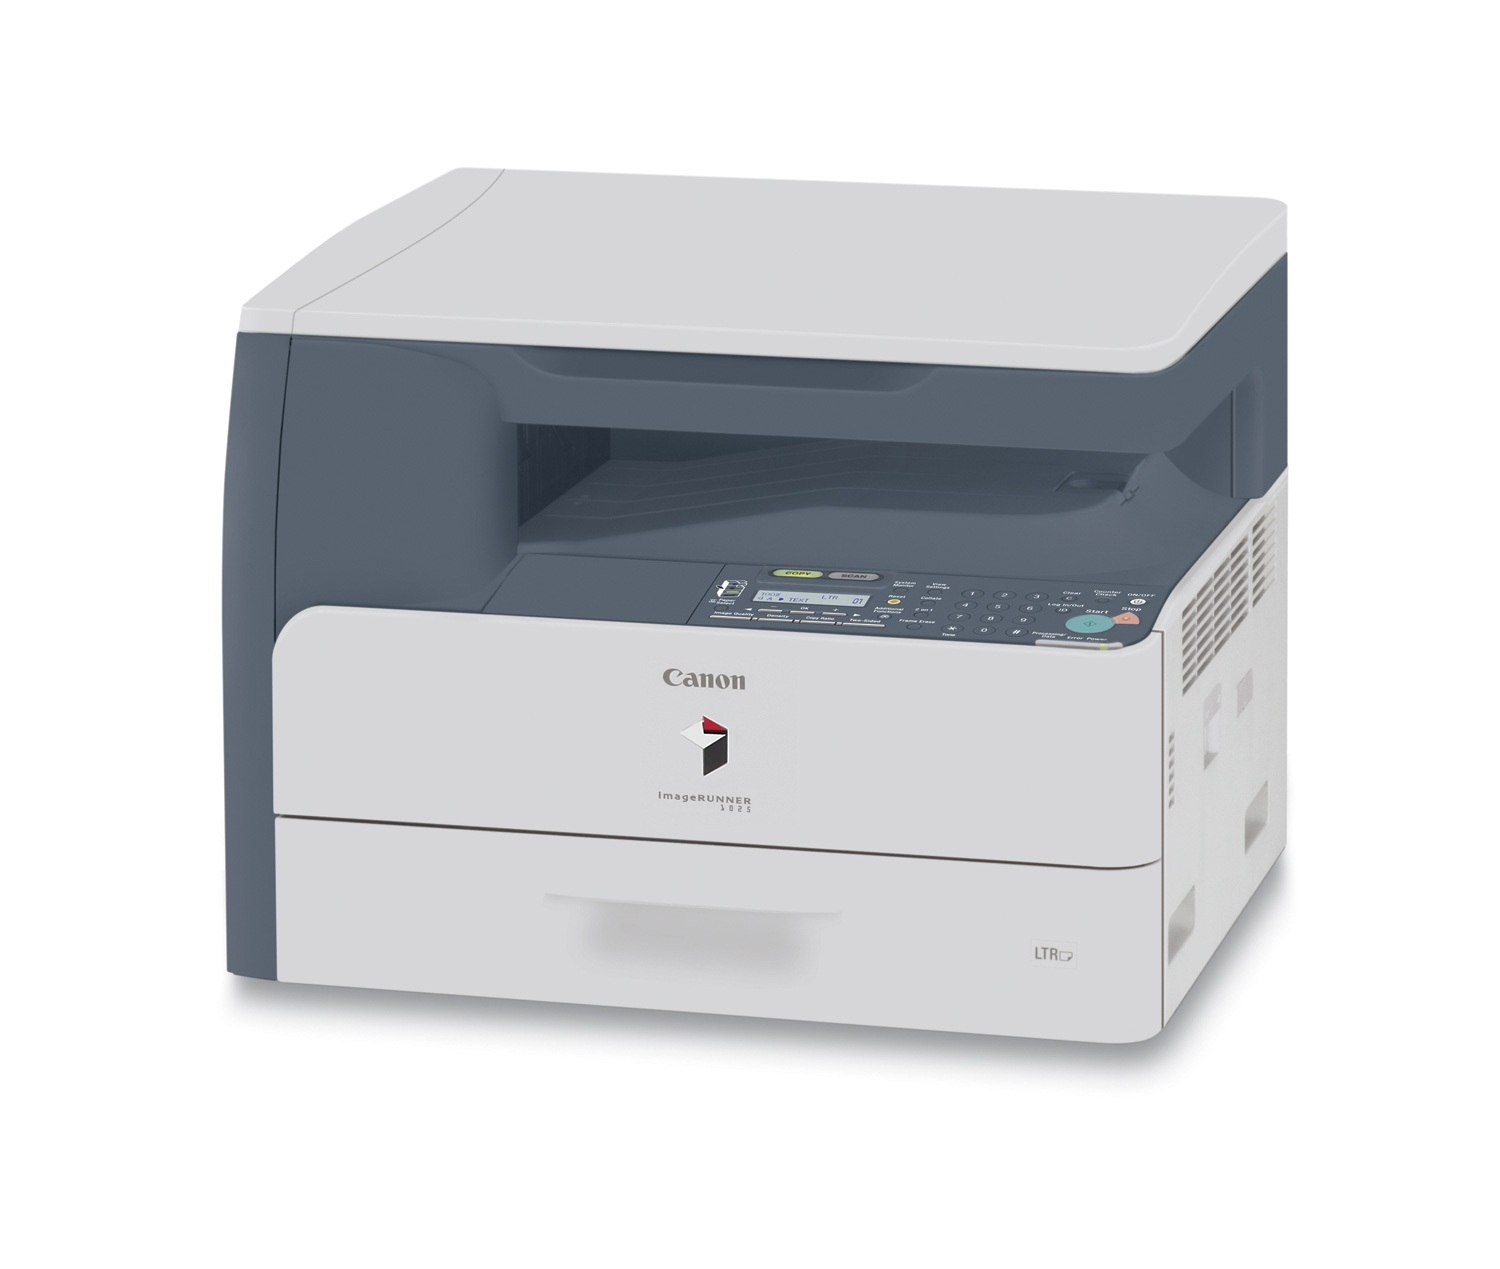 The printer might not pick up paper if the paper size and type in the paper tray do not match the paper size and type settings in the print driver.